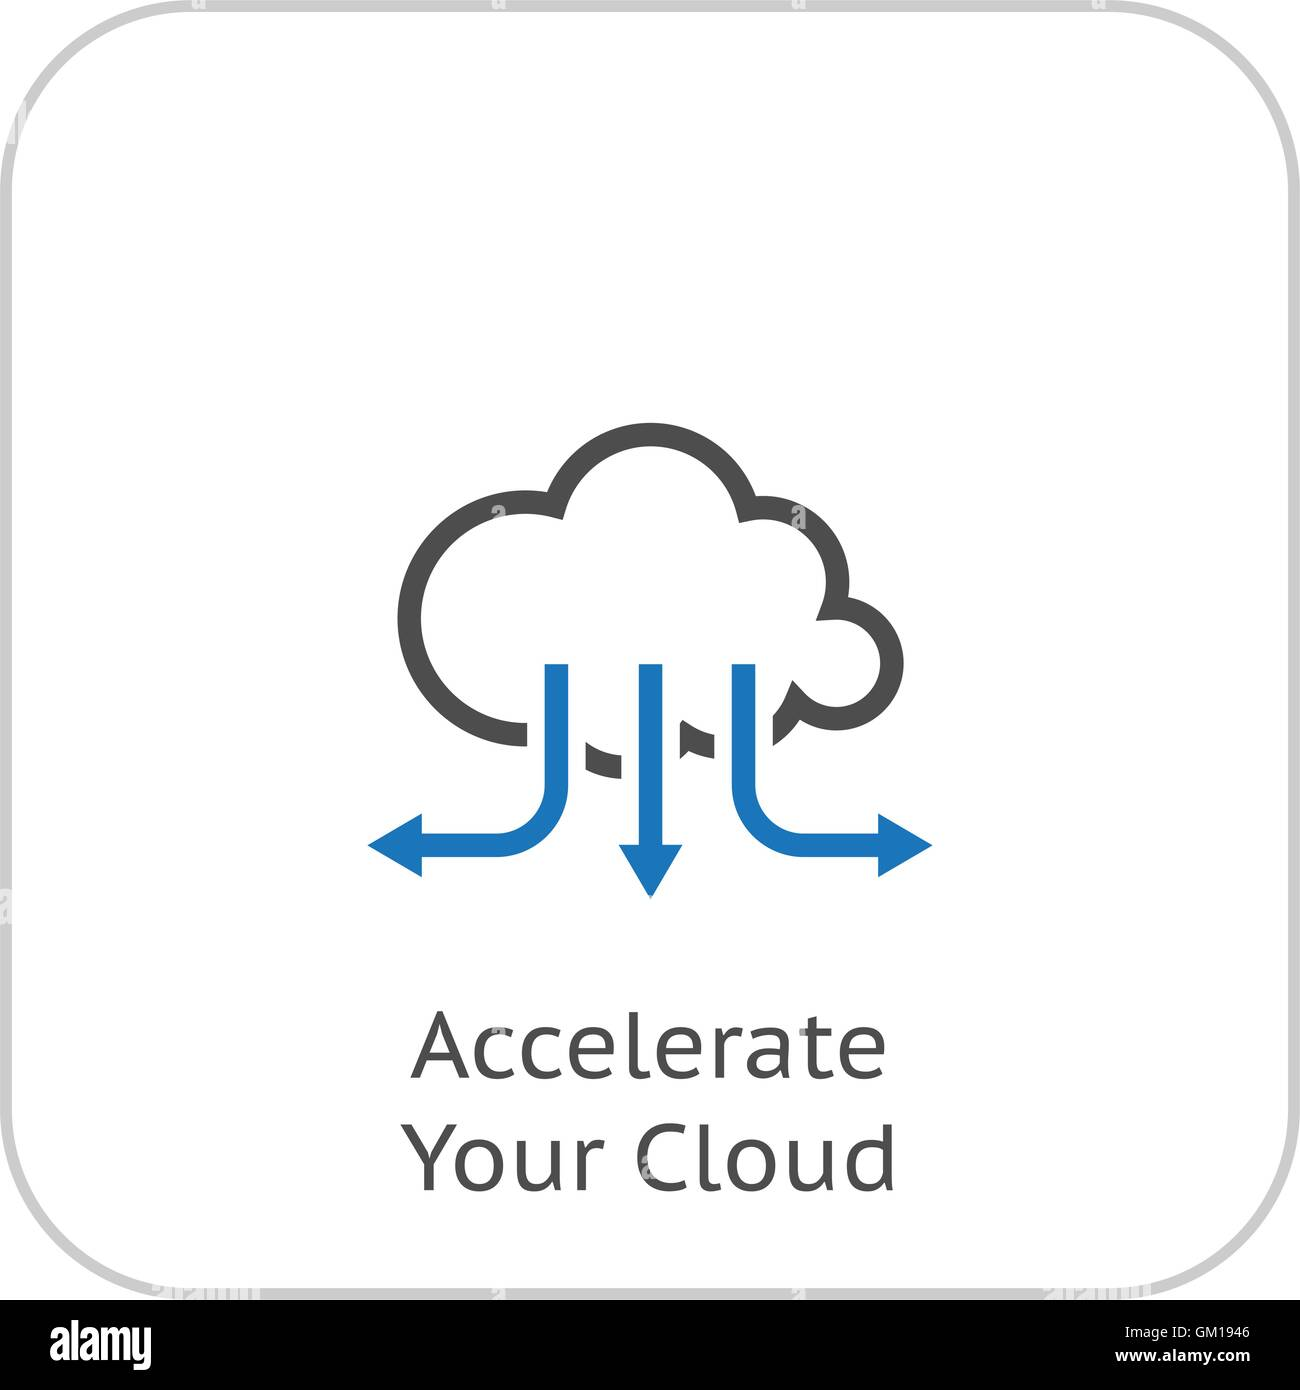 Accelerate Your Cloud Icon. Business Concept. Flat Design. Stock Vector